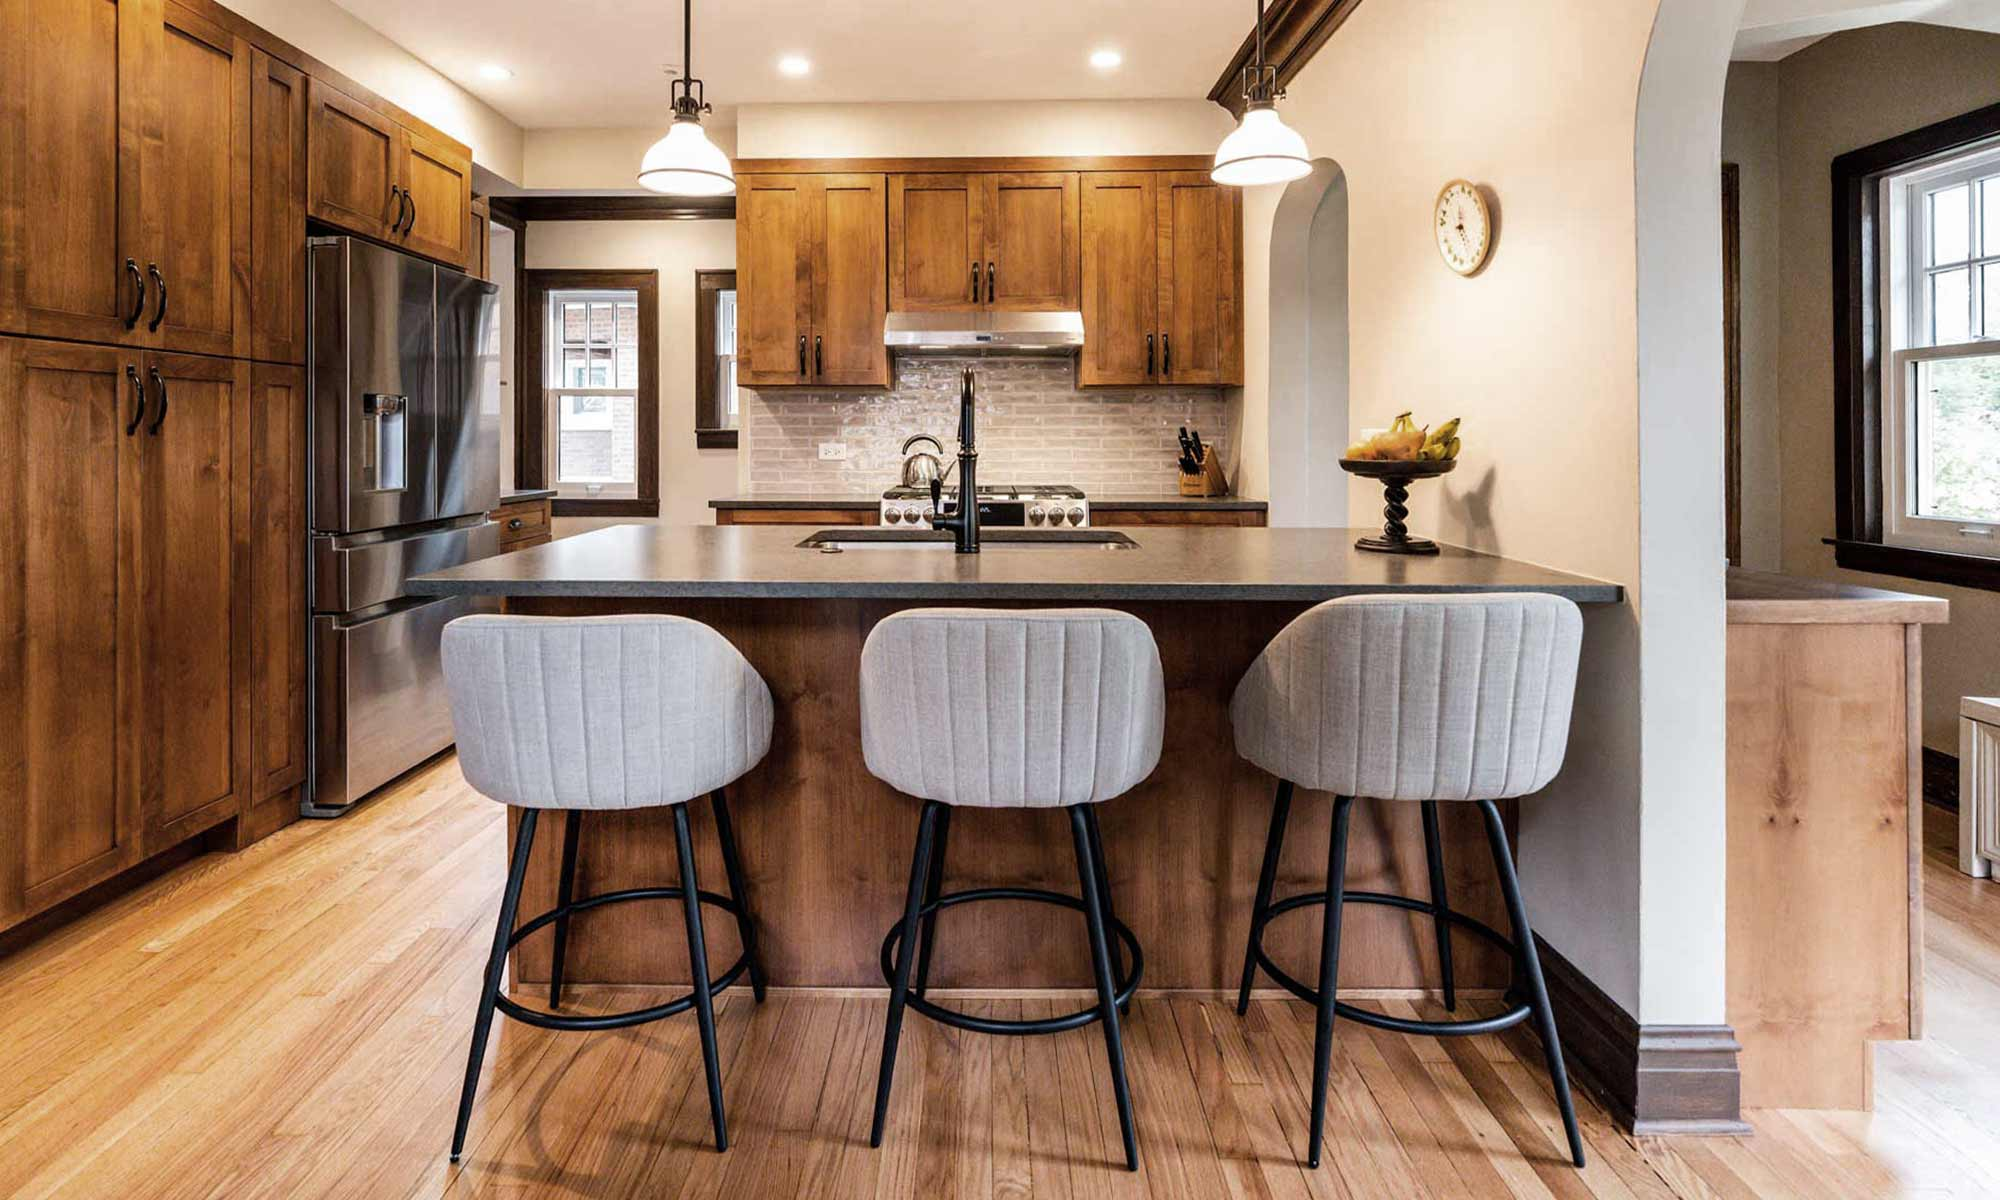 dark wood kitchen cabinets with peninsula seating